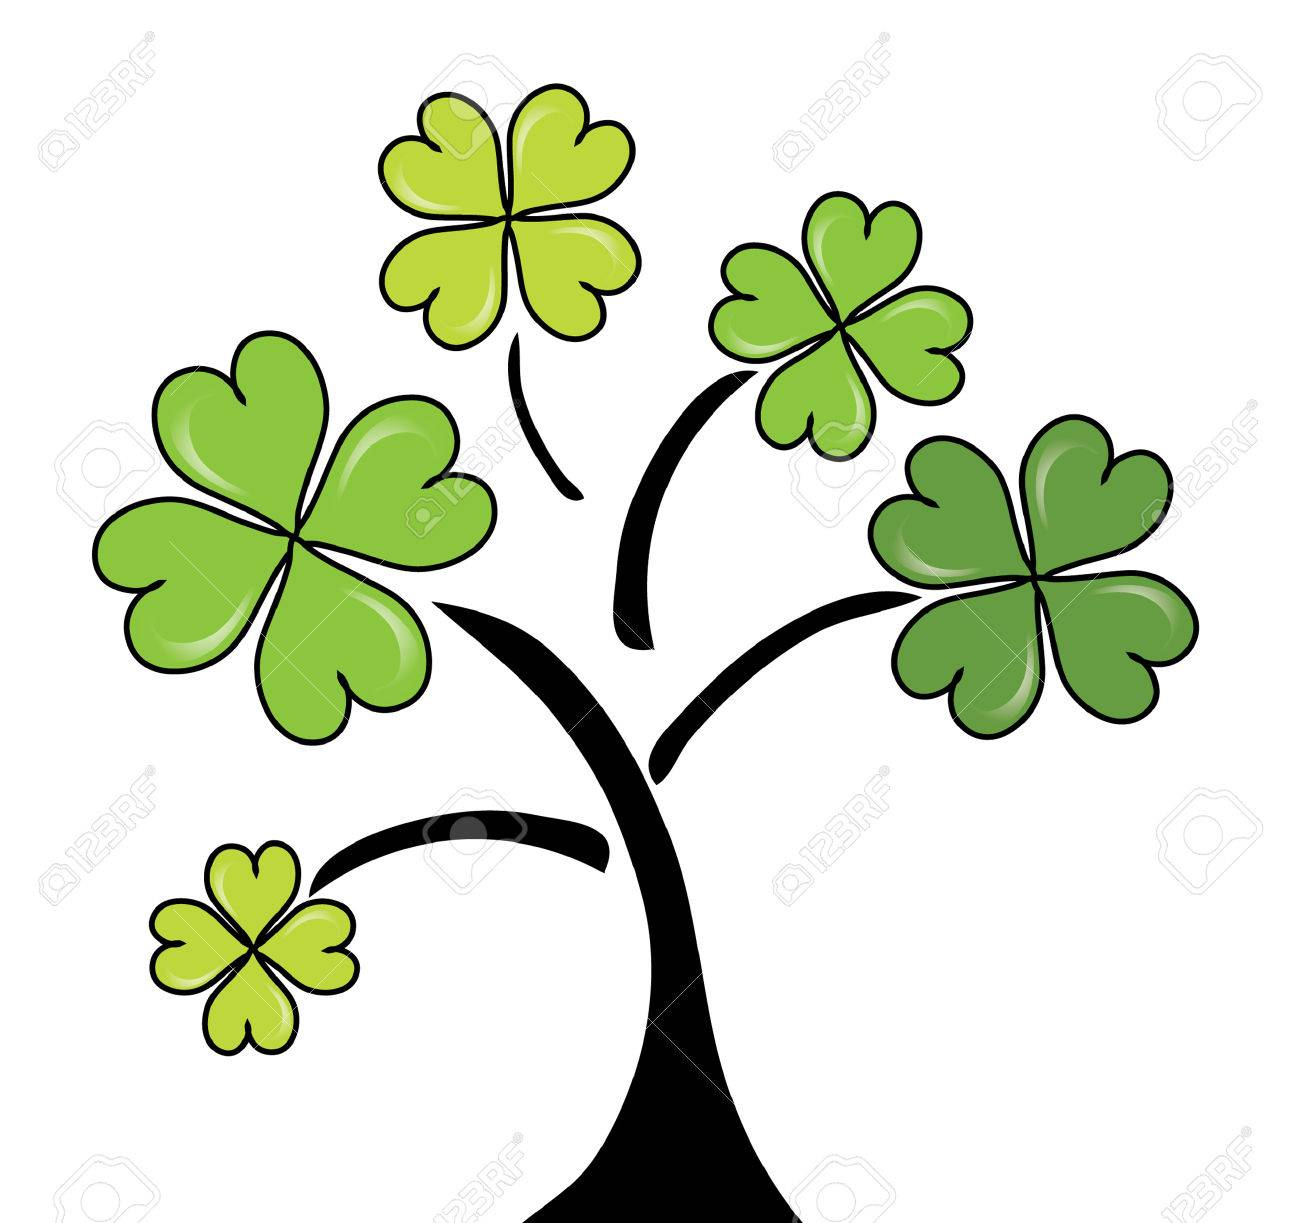 clover tree for St. Patrick's Day Stock Vector - 8921152